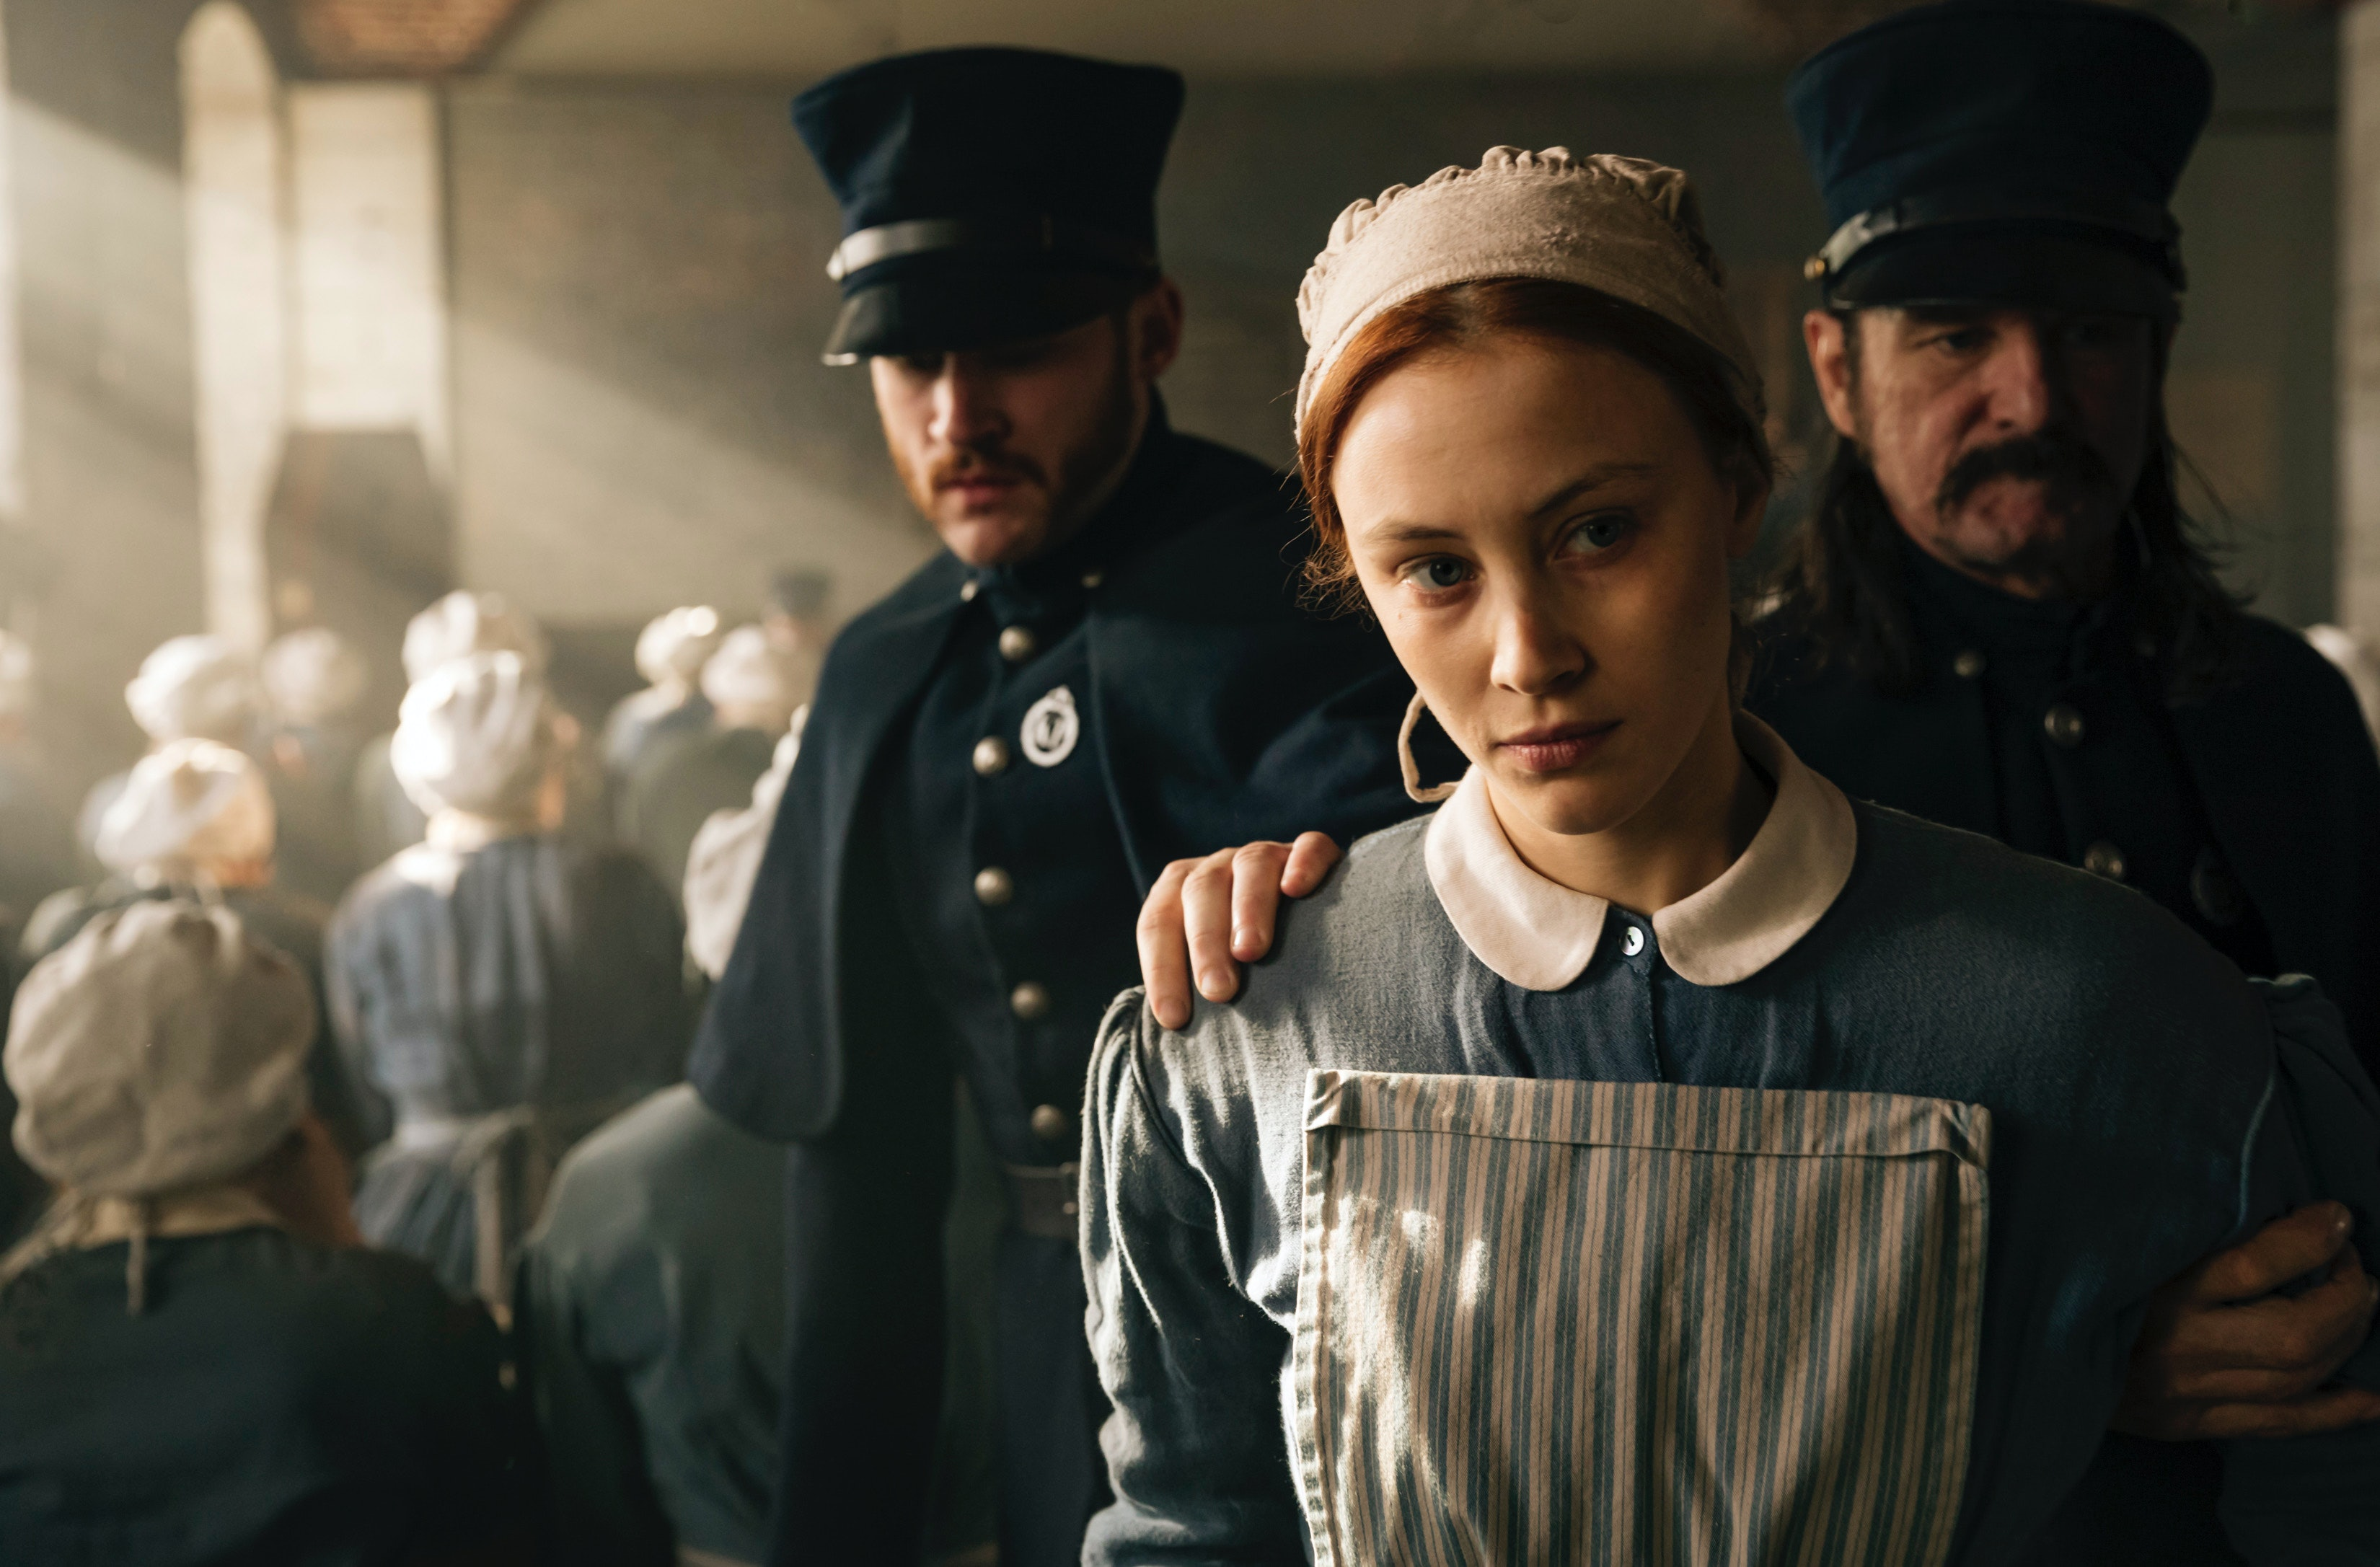 alias grace quotes with page number